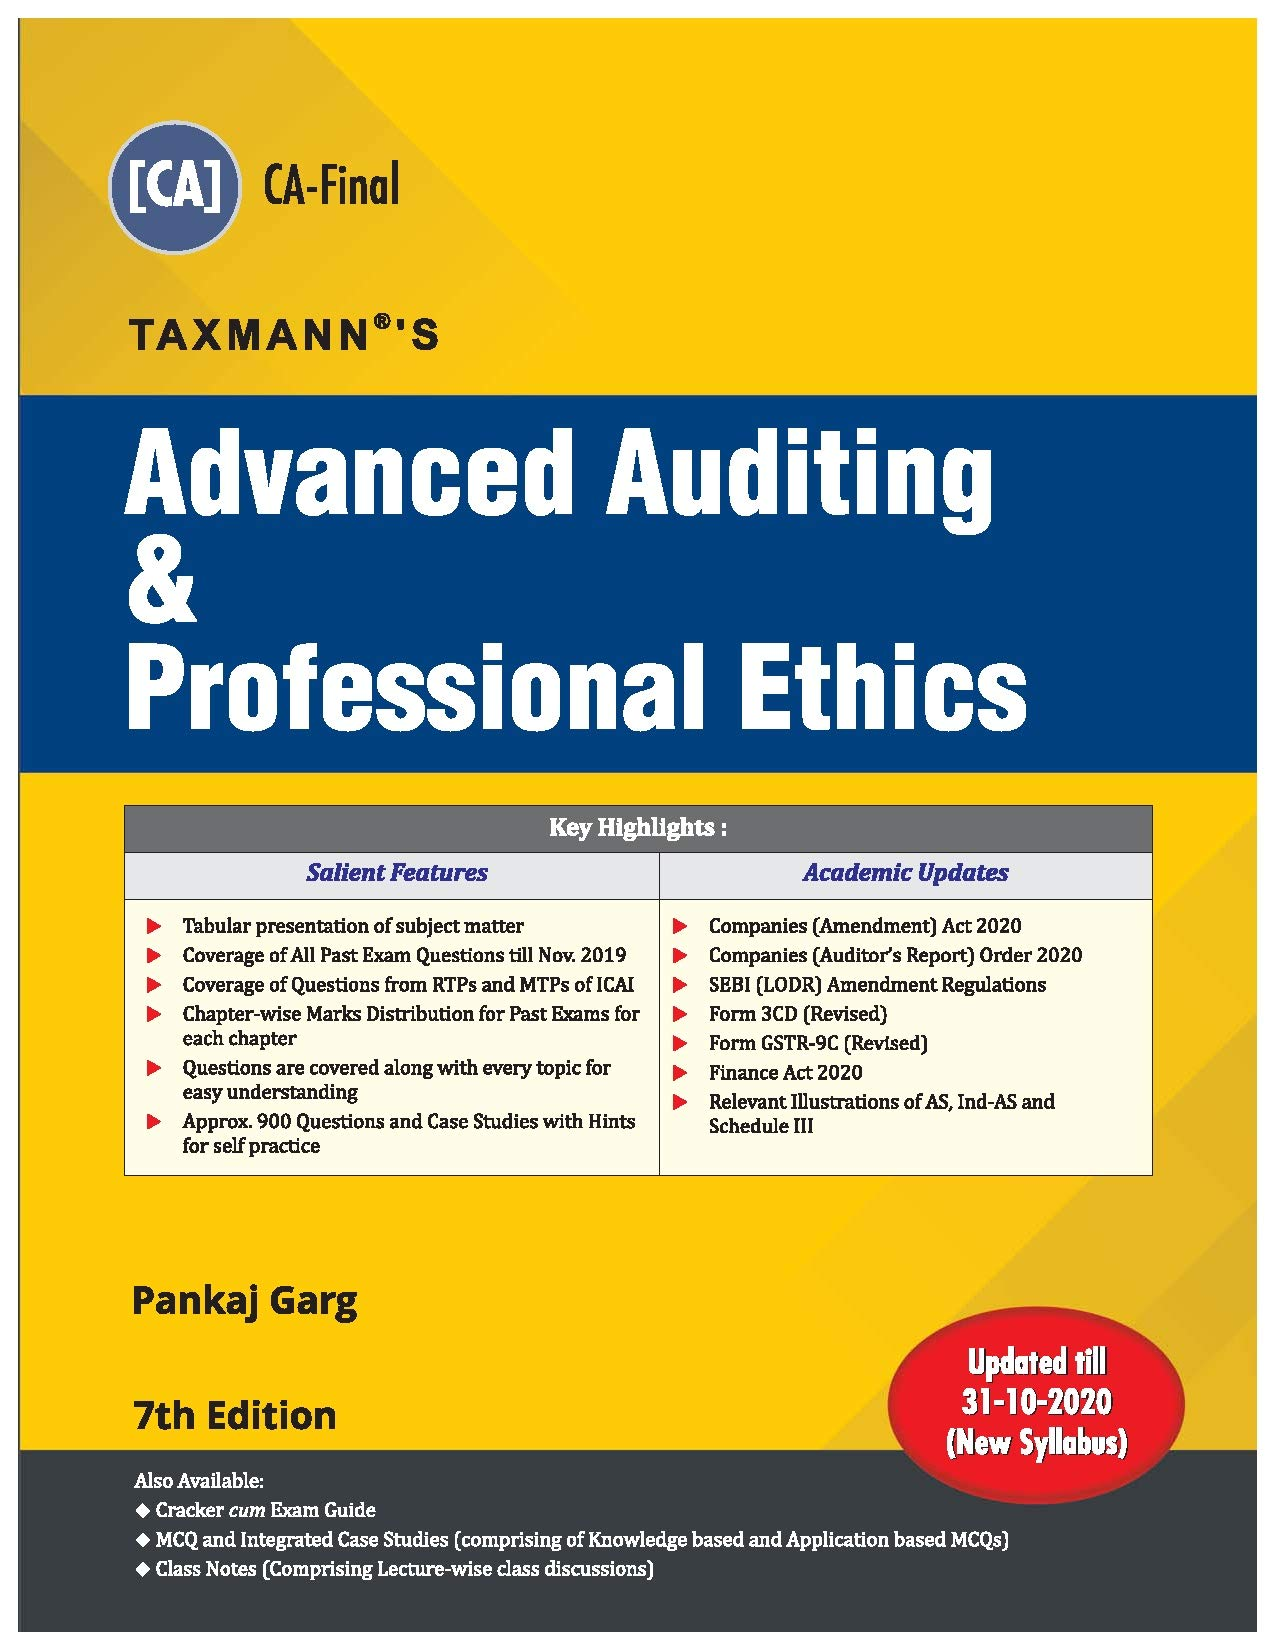 Taxmann's Advanced Auditing & Professional Ethics   CA Final–New Syllabus   Updated till 31-10-2020   7th Edition   December 2020